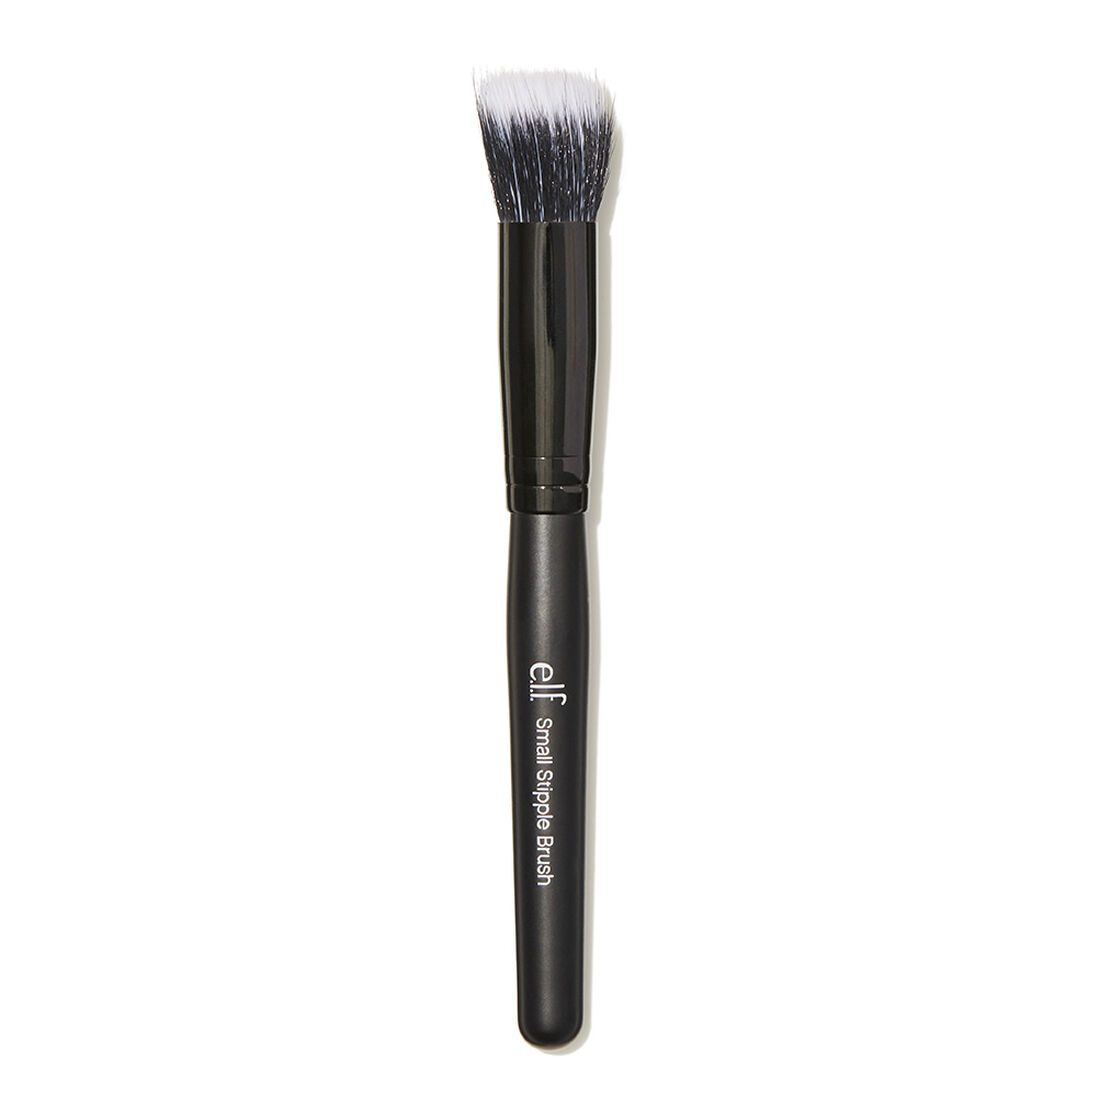 e.l.f. Cosmetics Small Stipple Brush